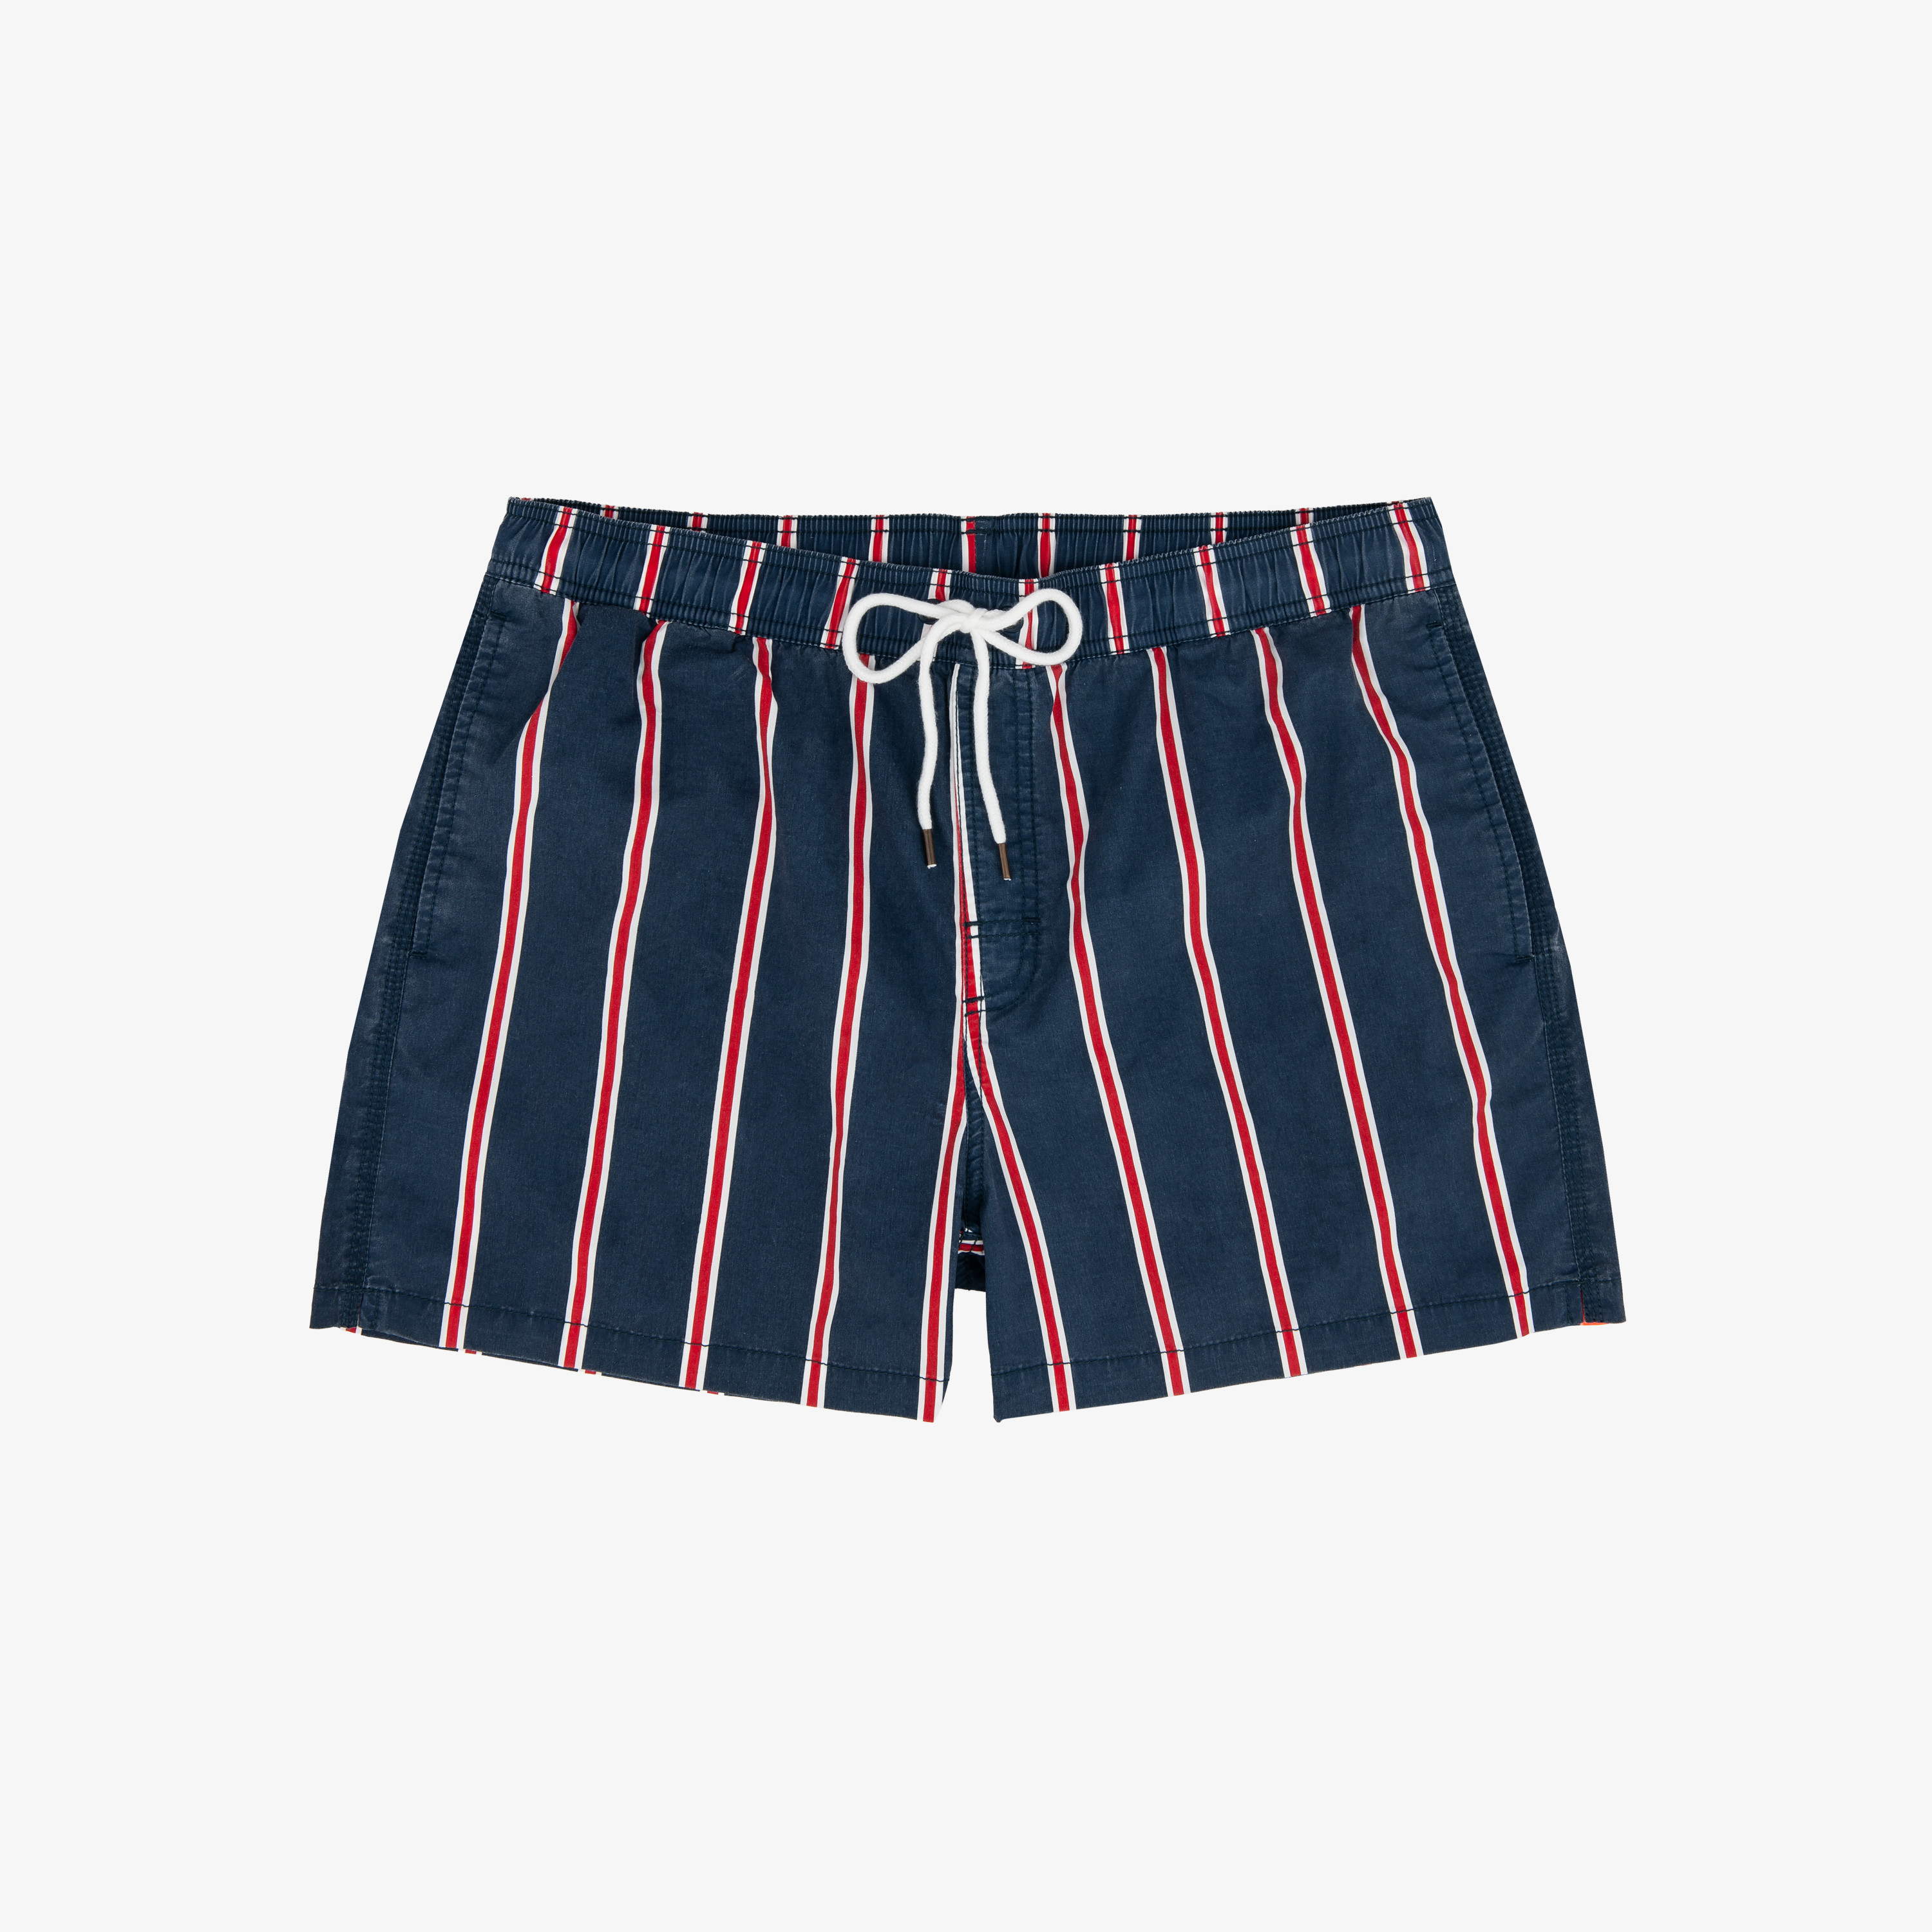 SWIM PANT STRIPES NAVY BLUE